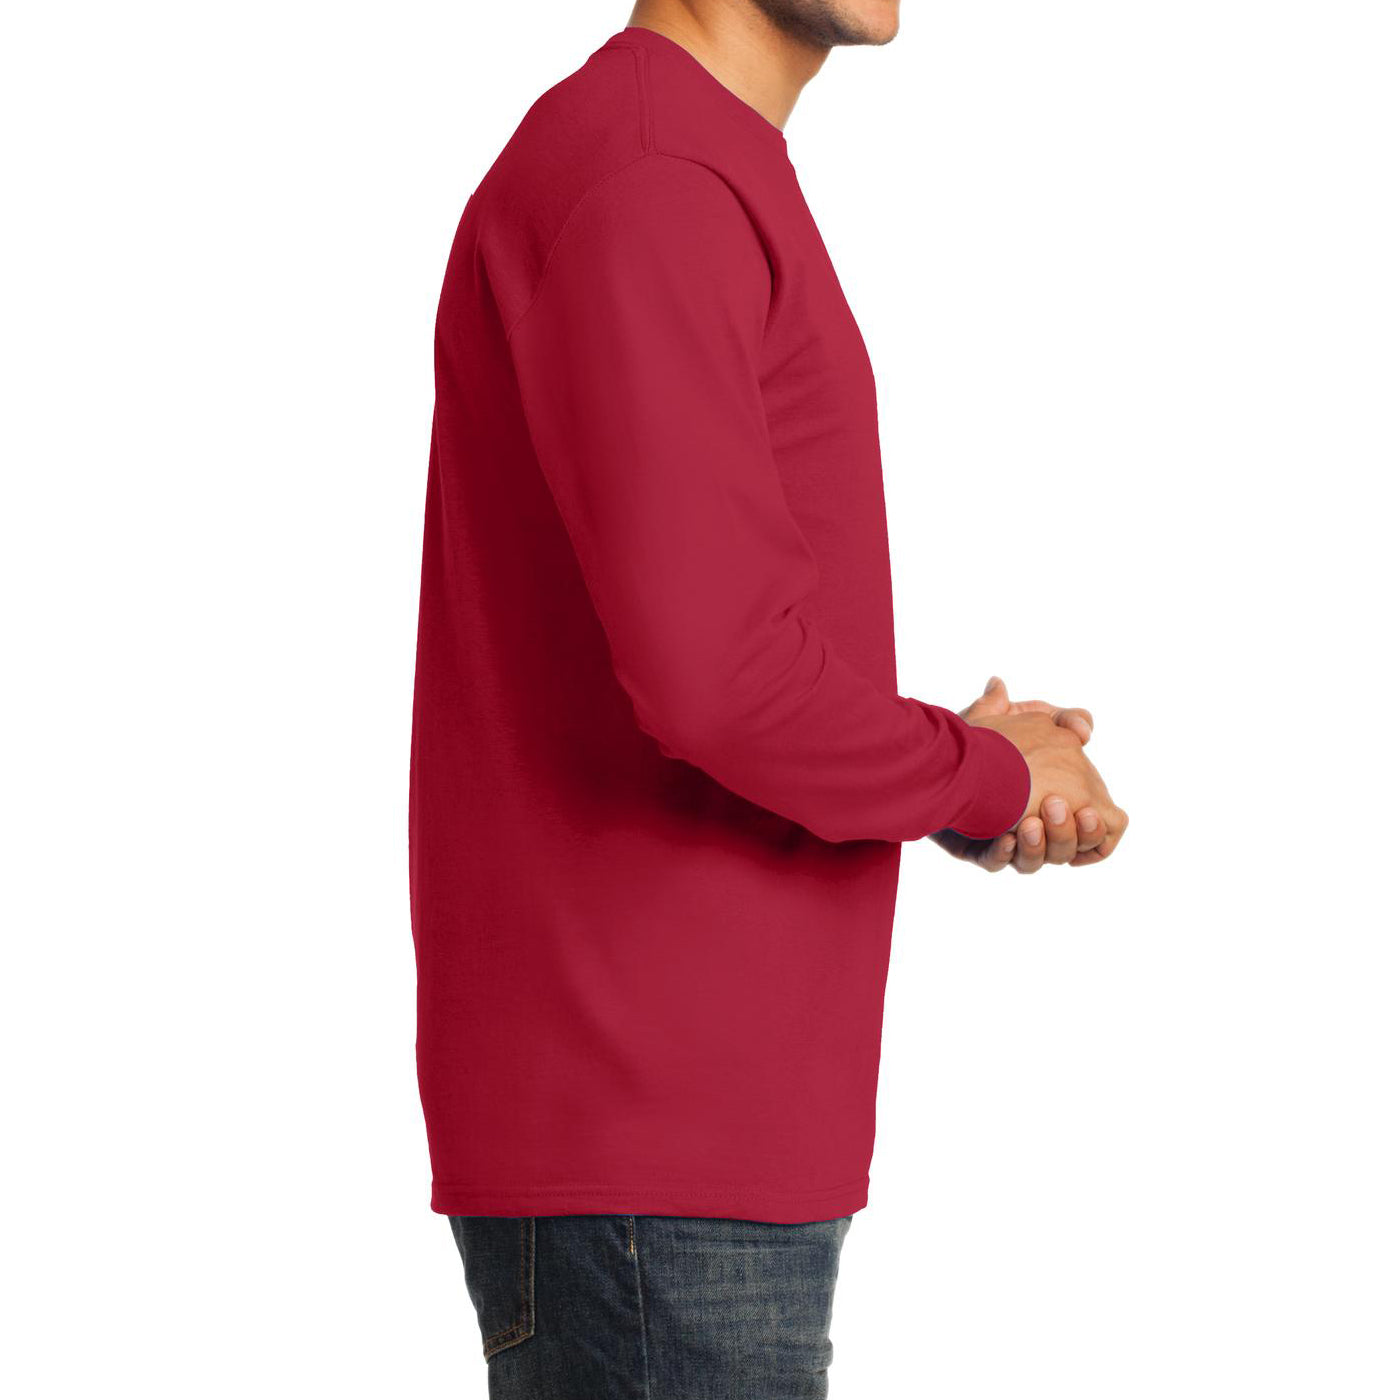 Men's Long Sleeve Essential Tee - Red - Side